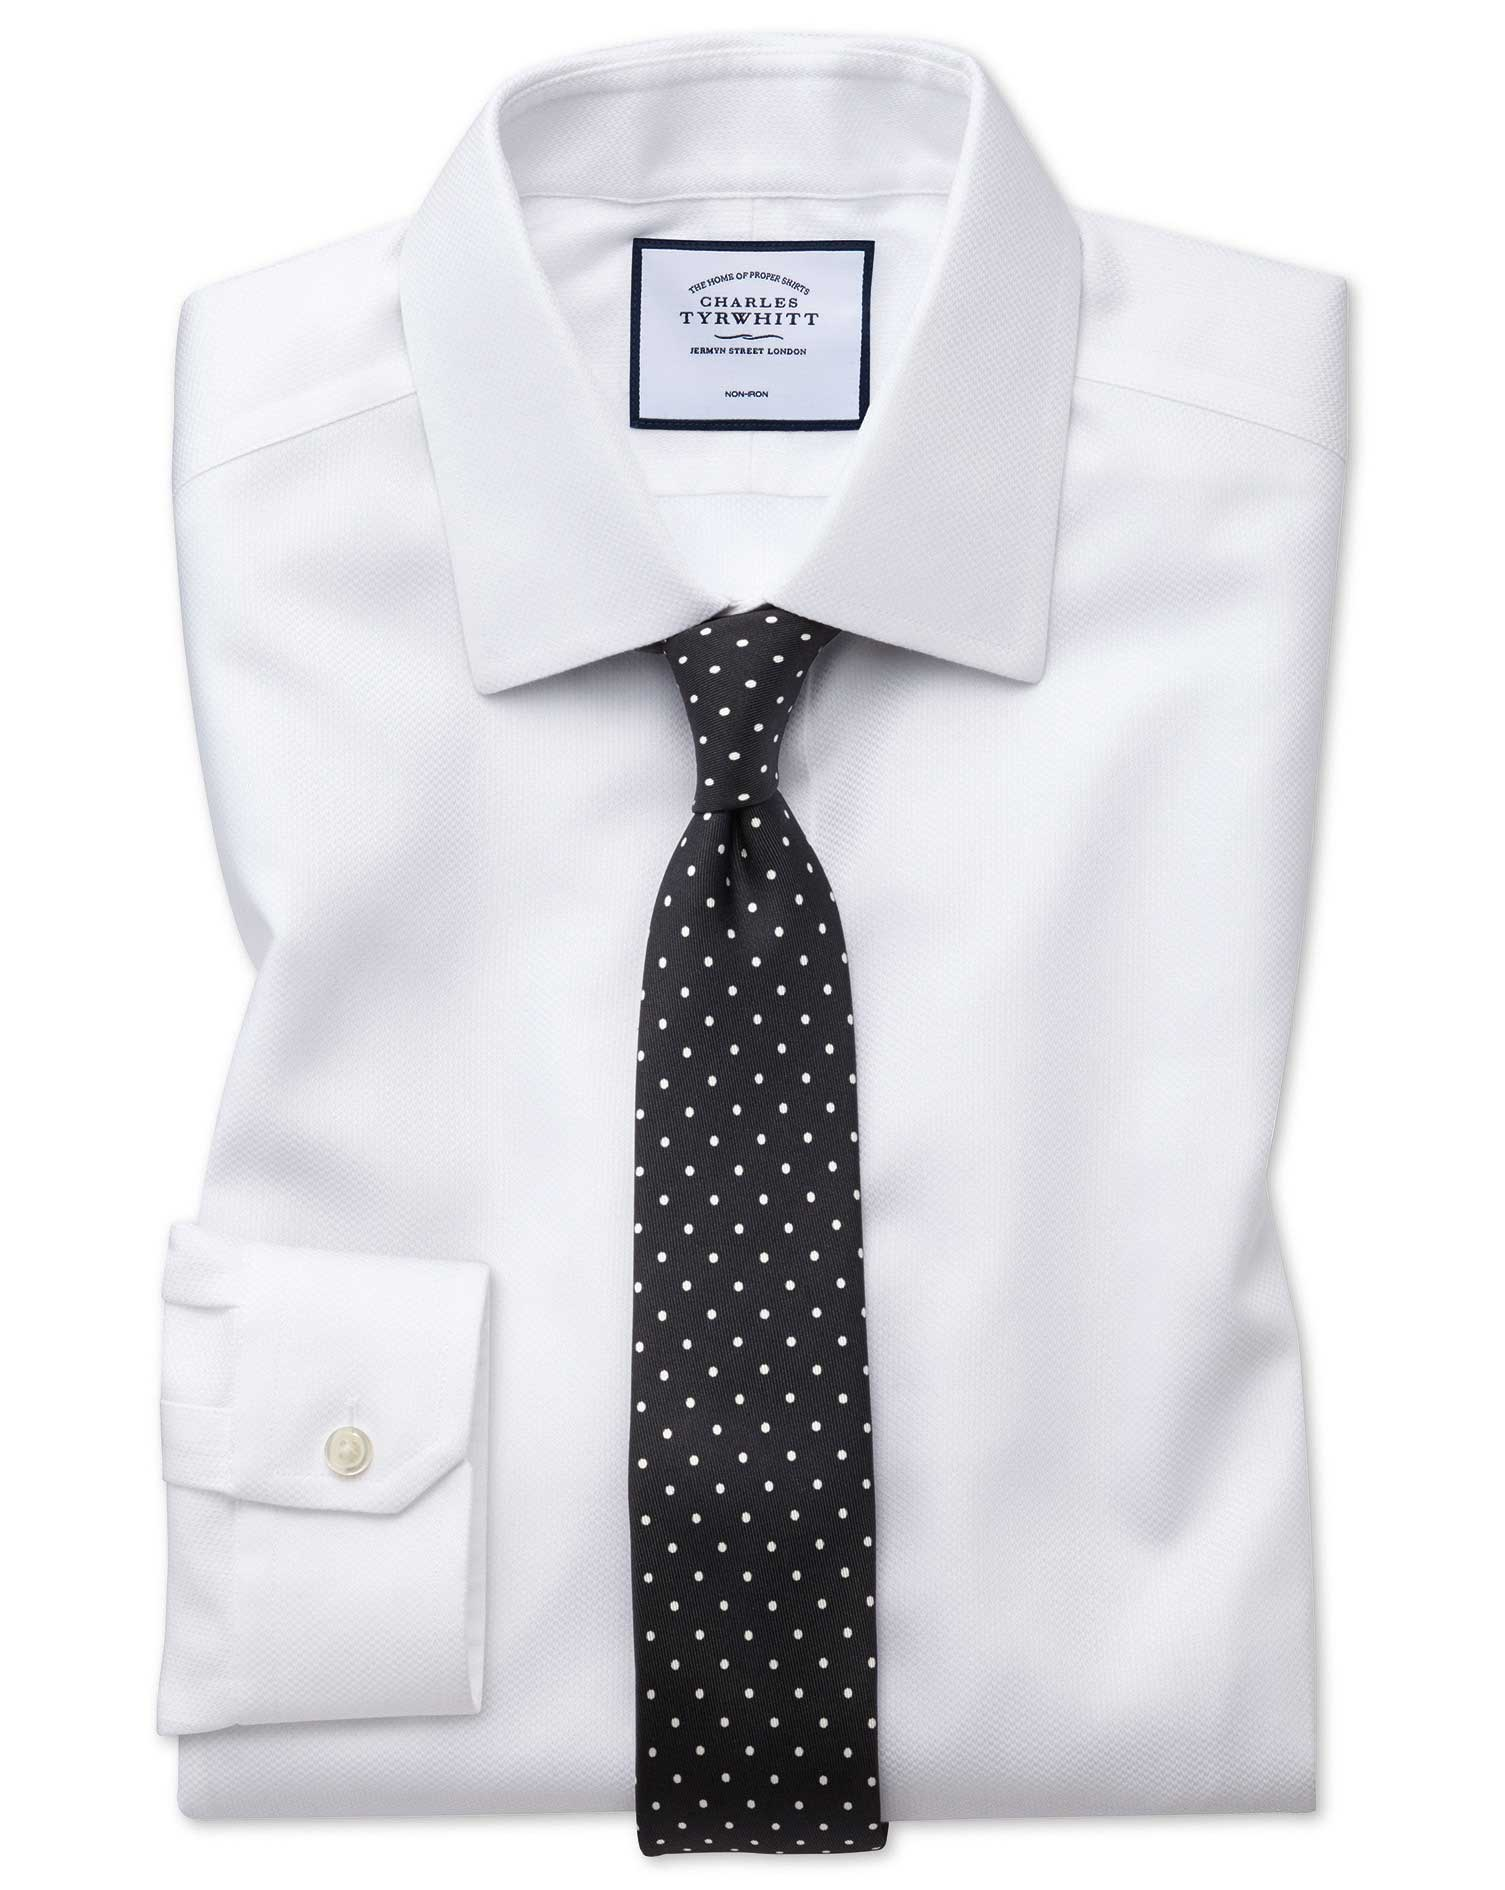 Super Slim Fit Non-Iron White Arrow Weave Cotton Formal Shirt Single Cuff Size 14/33 by Charles Tyrw